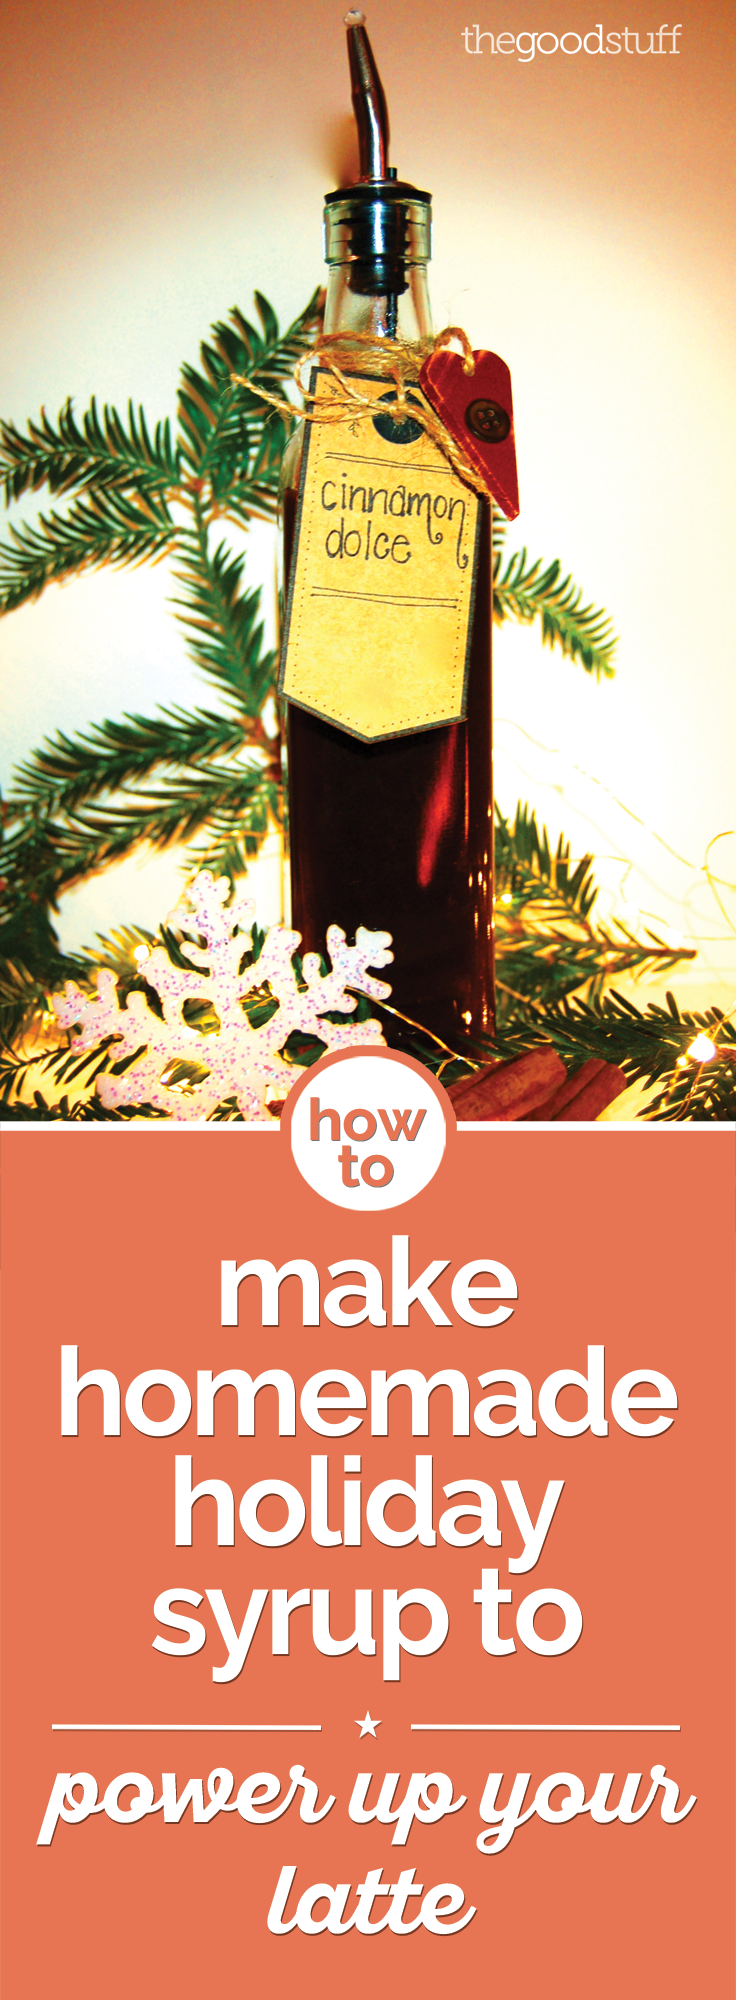 how to make homemade syrup